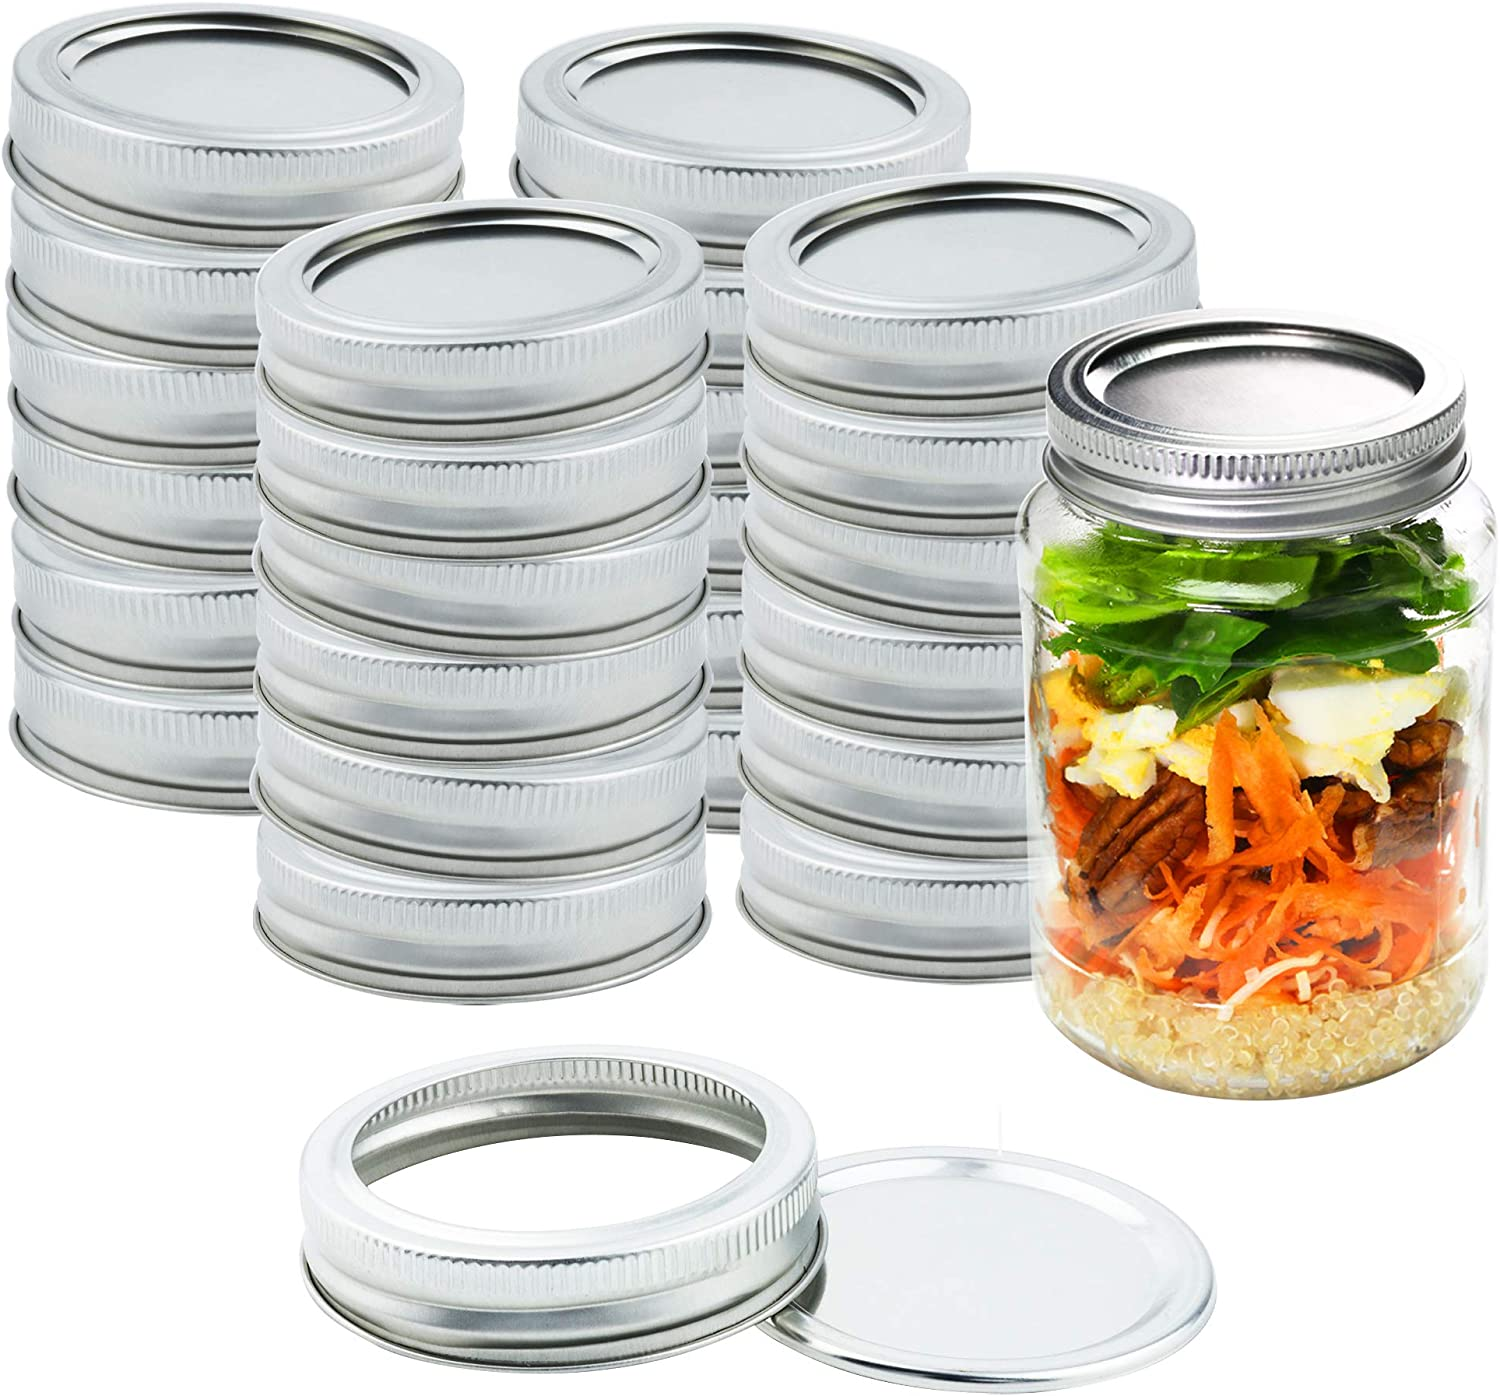 Kinghouse Mason Jar Canning Lids Regular Mouth Lids Split-Type Reusable for Jam, Honey, Wedding Favors, Baby Foods, 24 Sets per Box (Silver)